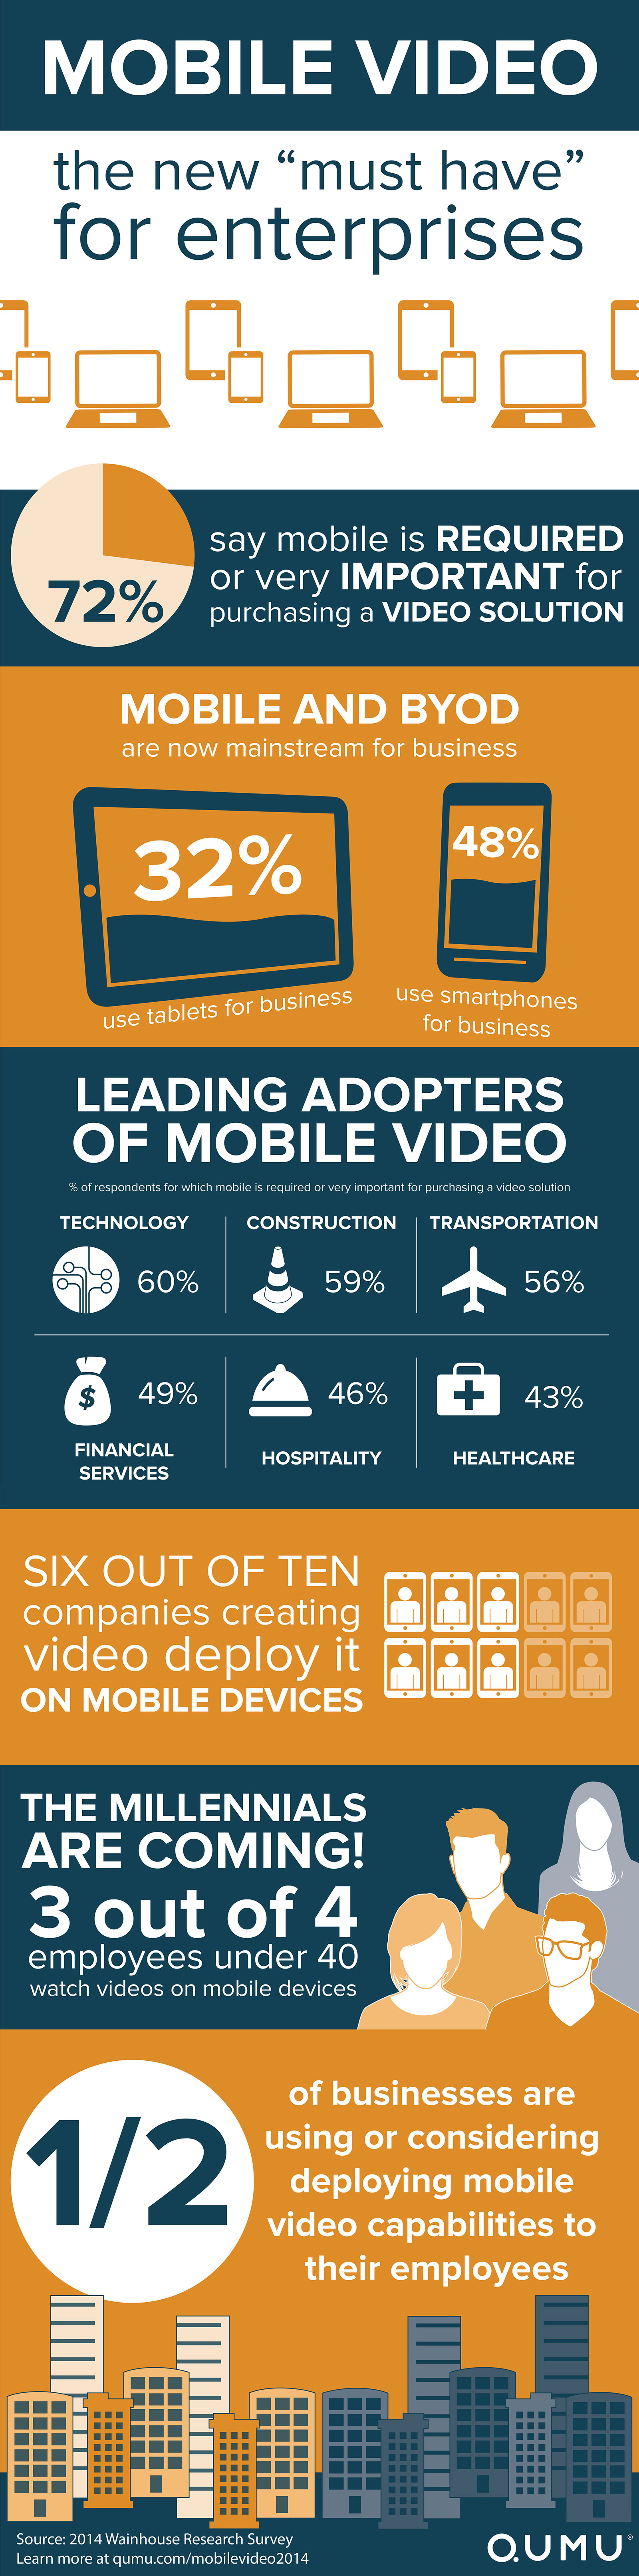 Infographic Mobile Video The New Must Have For Enterprises